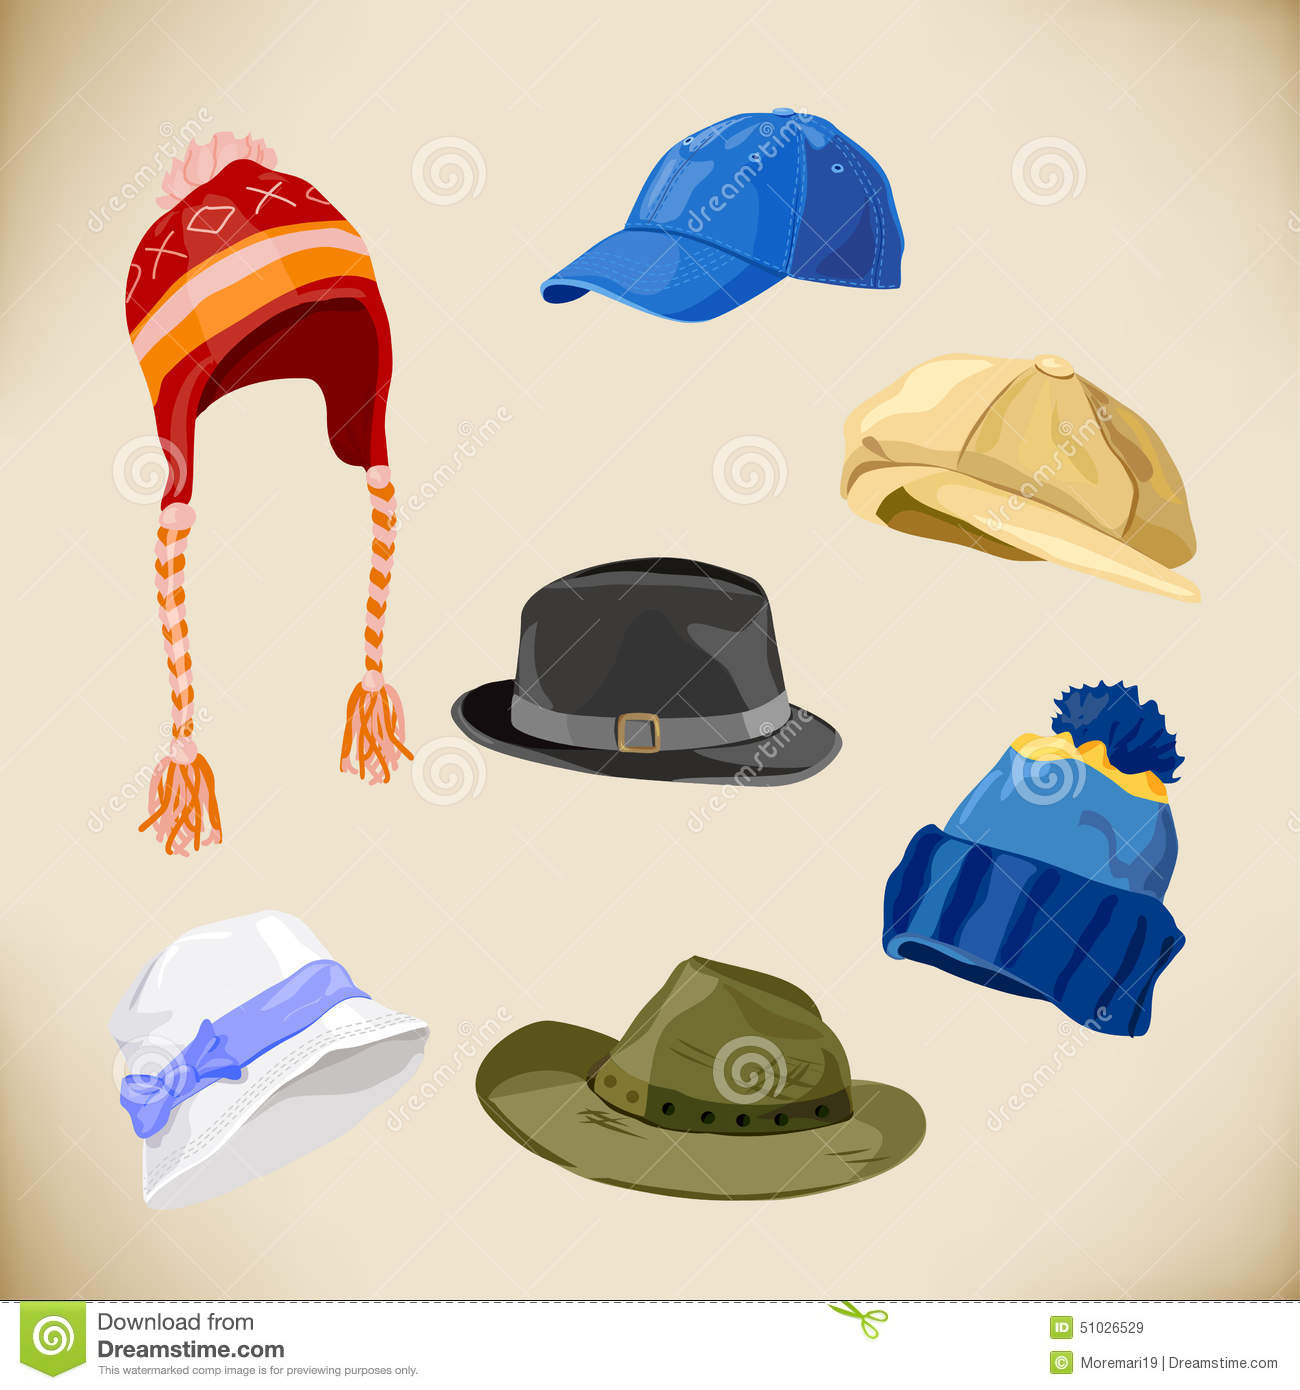 f95eec79370c9 Set Of Different Styles Of Hats Stock Vector - Illustration of head ...